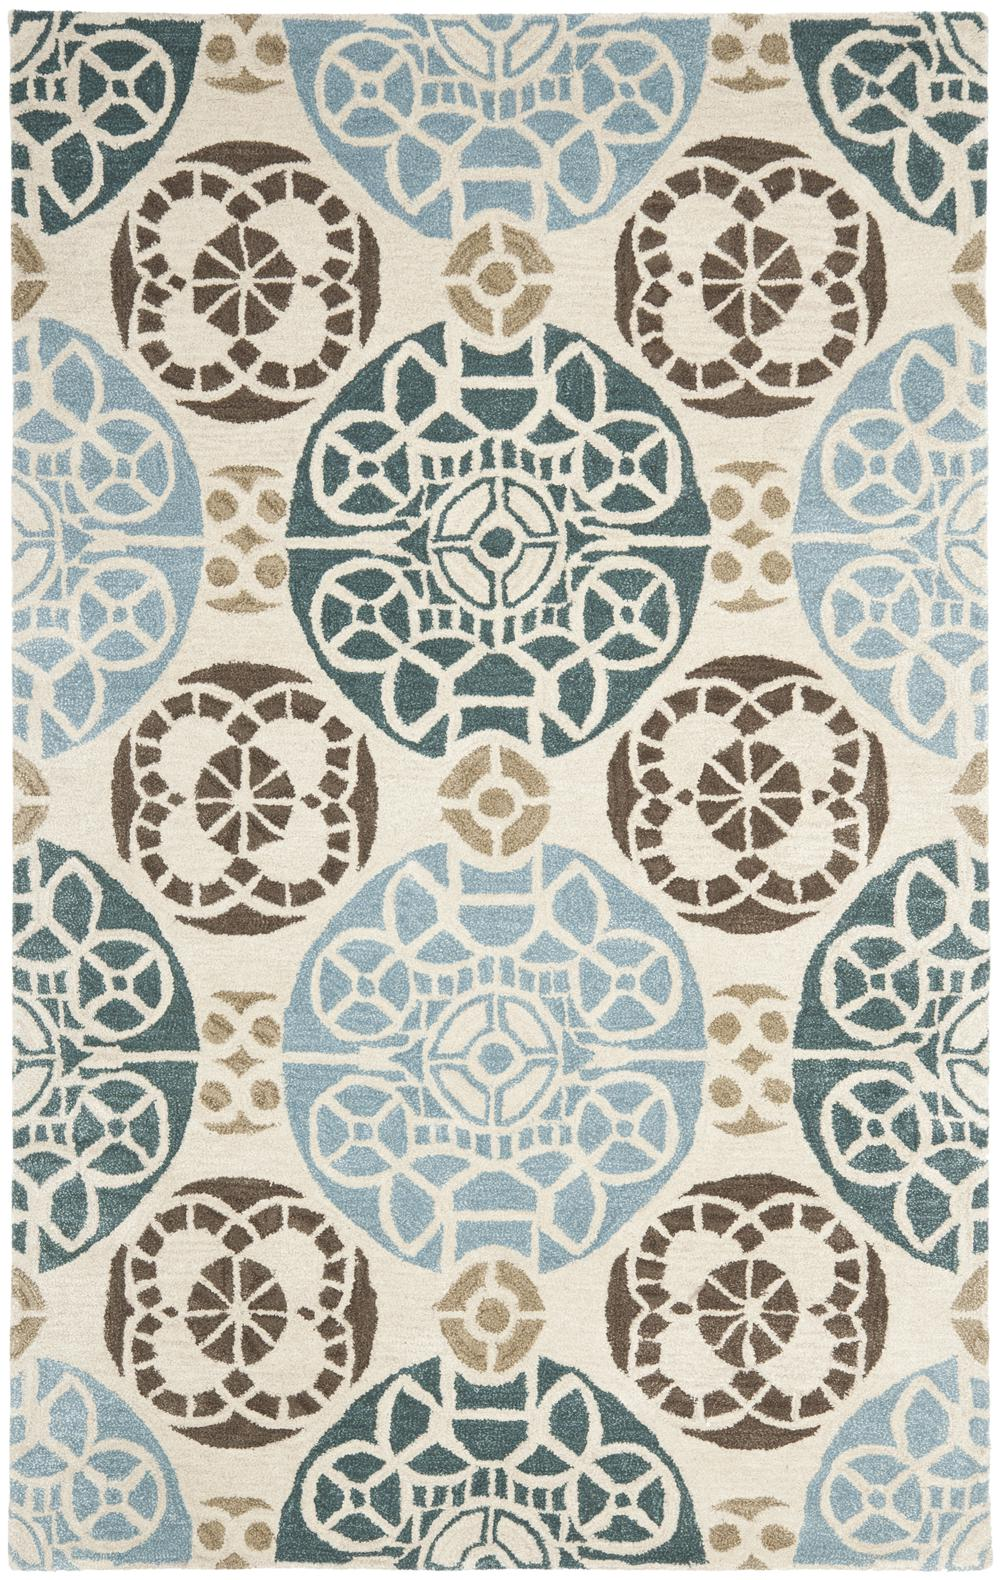 Blue And Beige Area Rug Home Decor